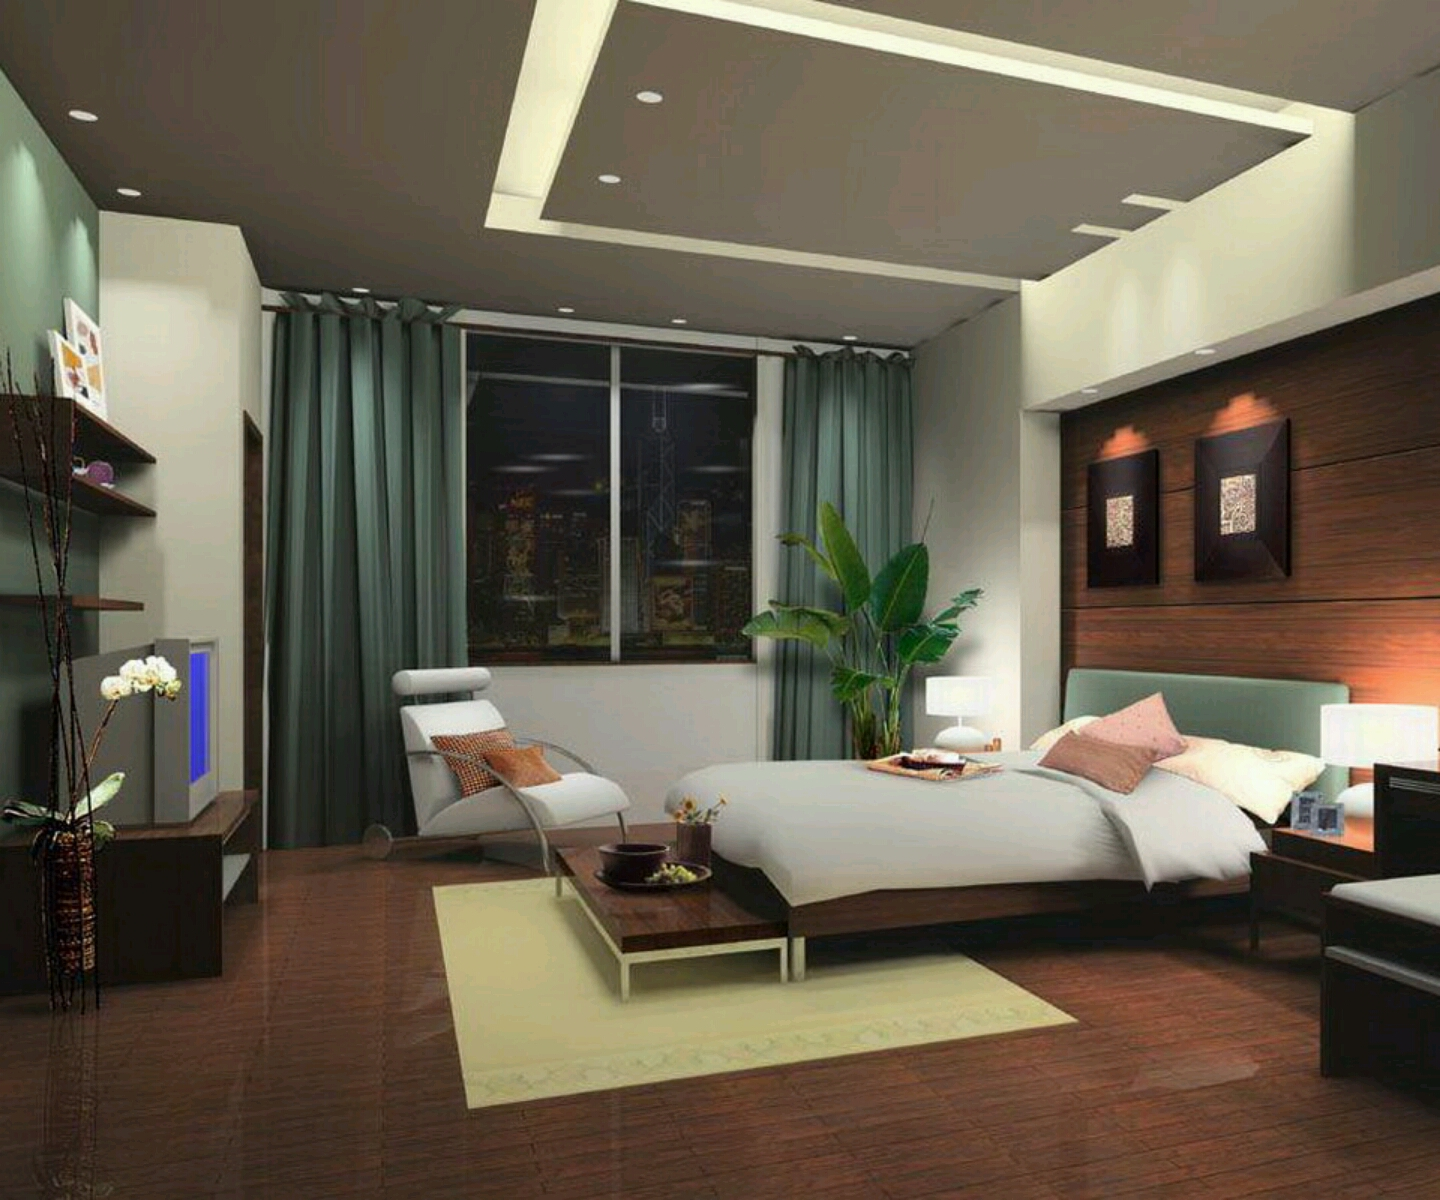 New home designs latest modern bedrooms designs best ideas for Latest home interior designs images